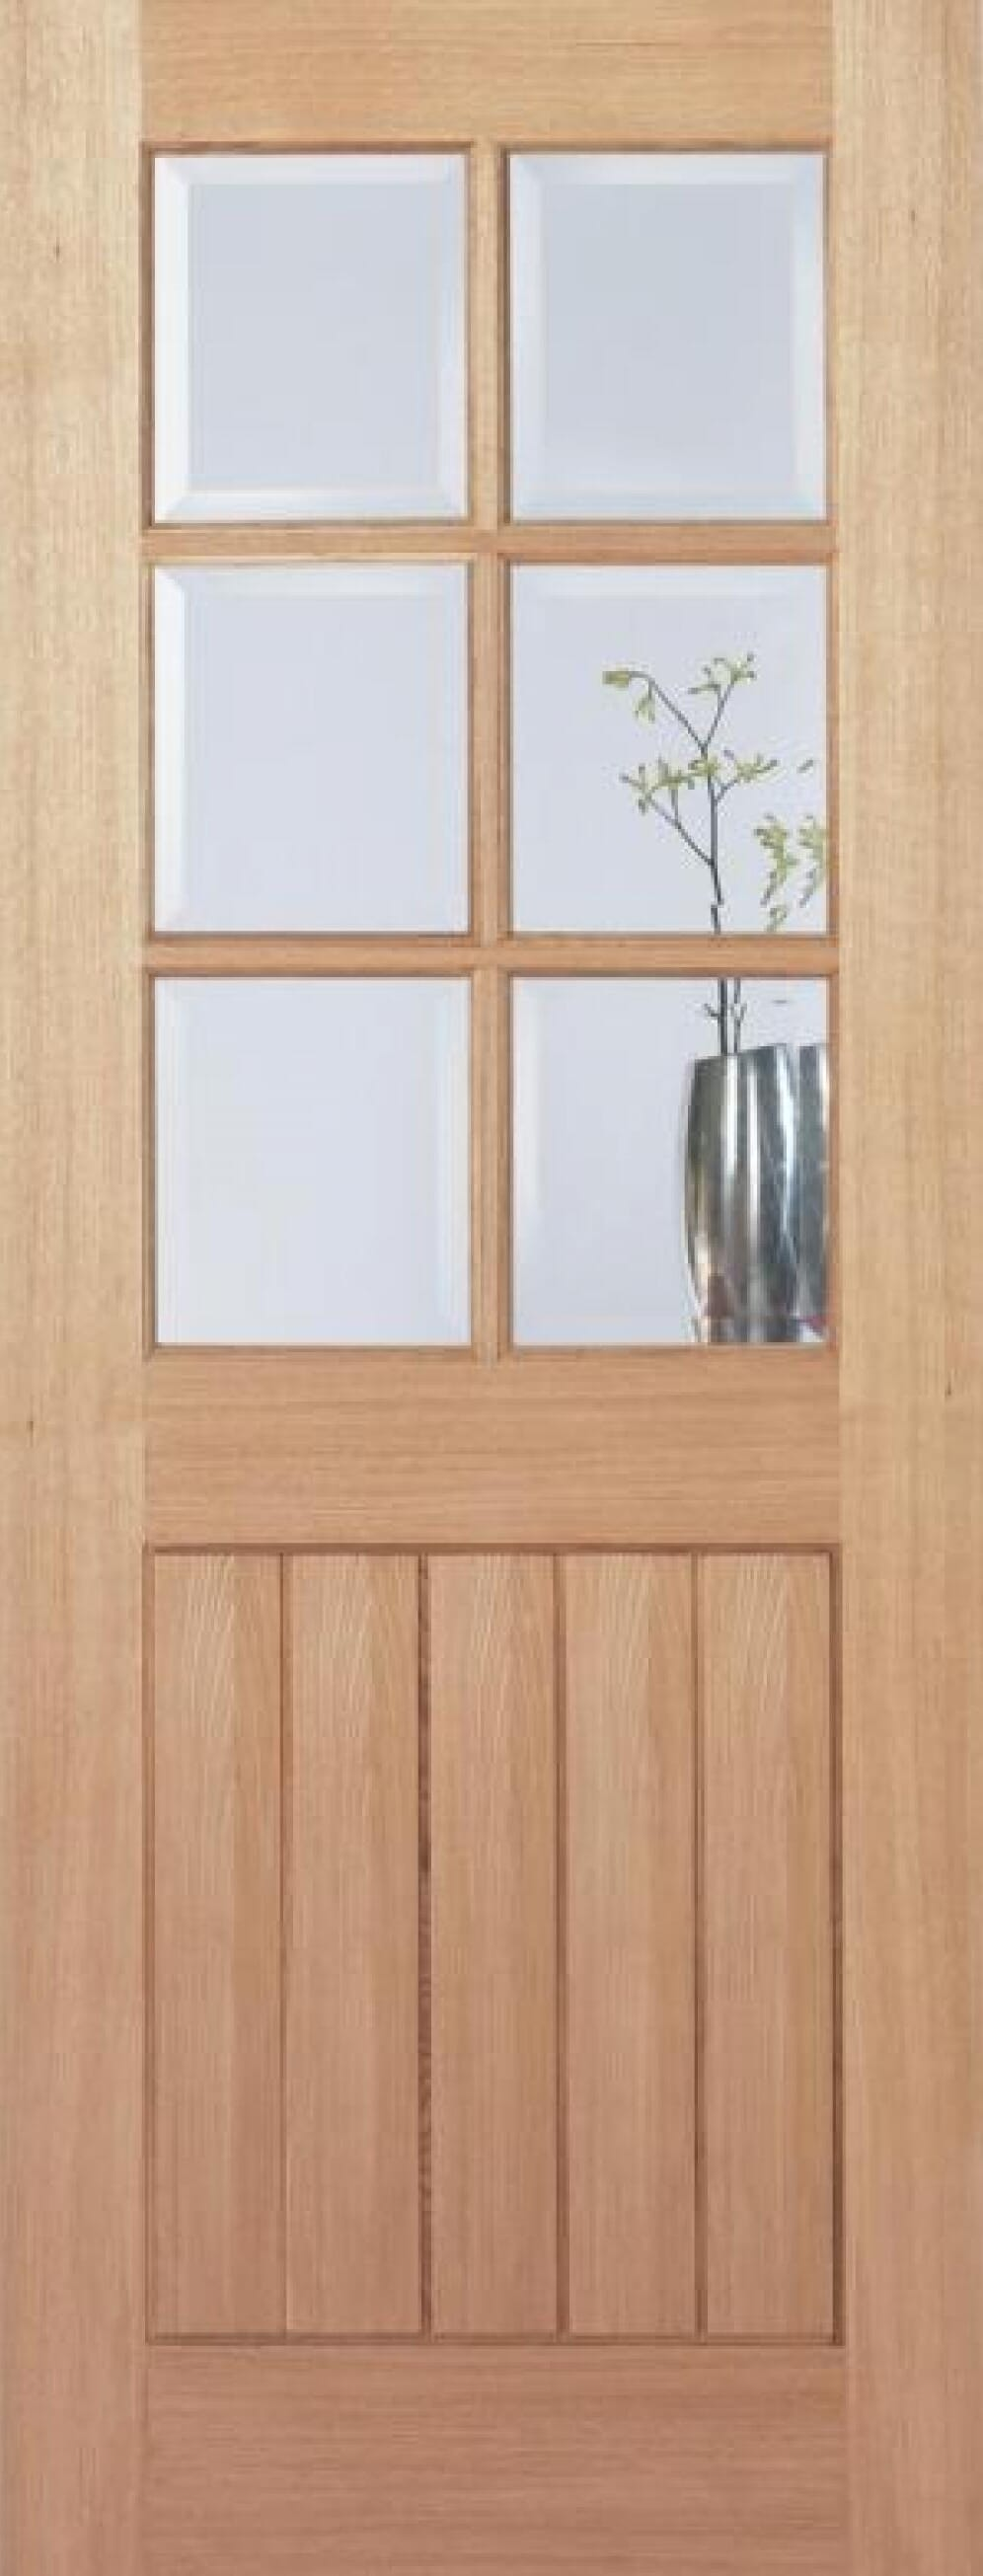 Mexicano Oak 6l - Prefinished Image